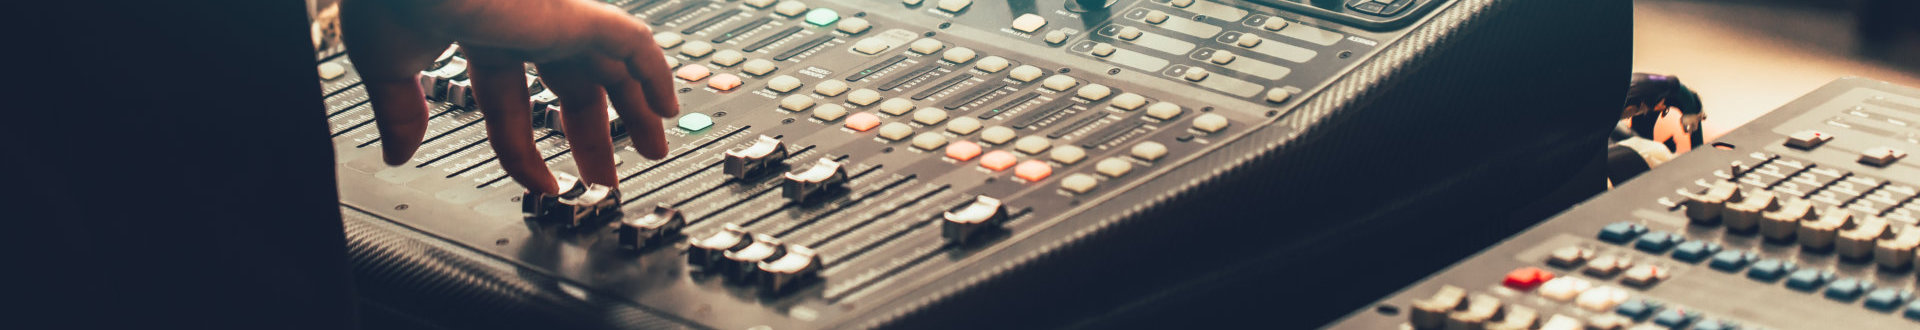 professional stage sound mixer closeup